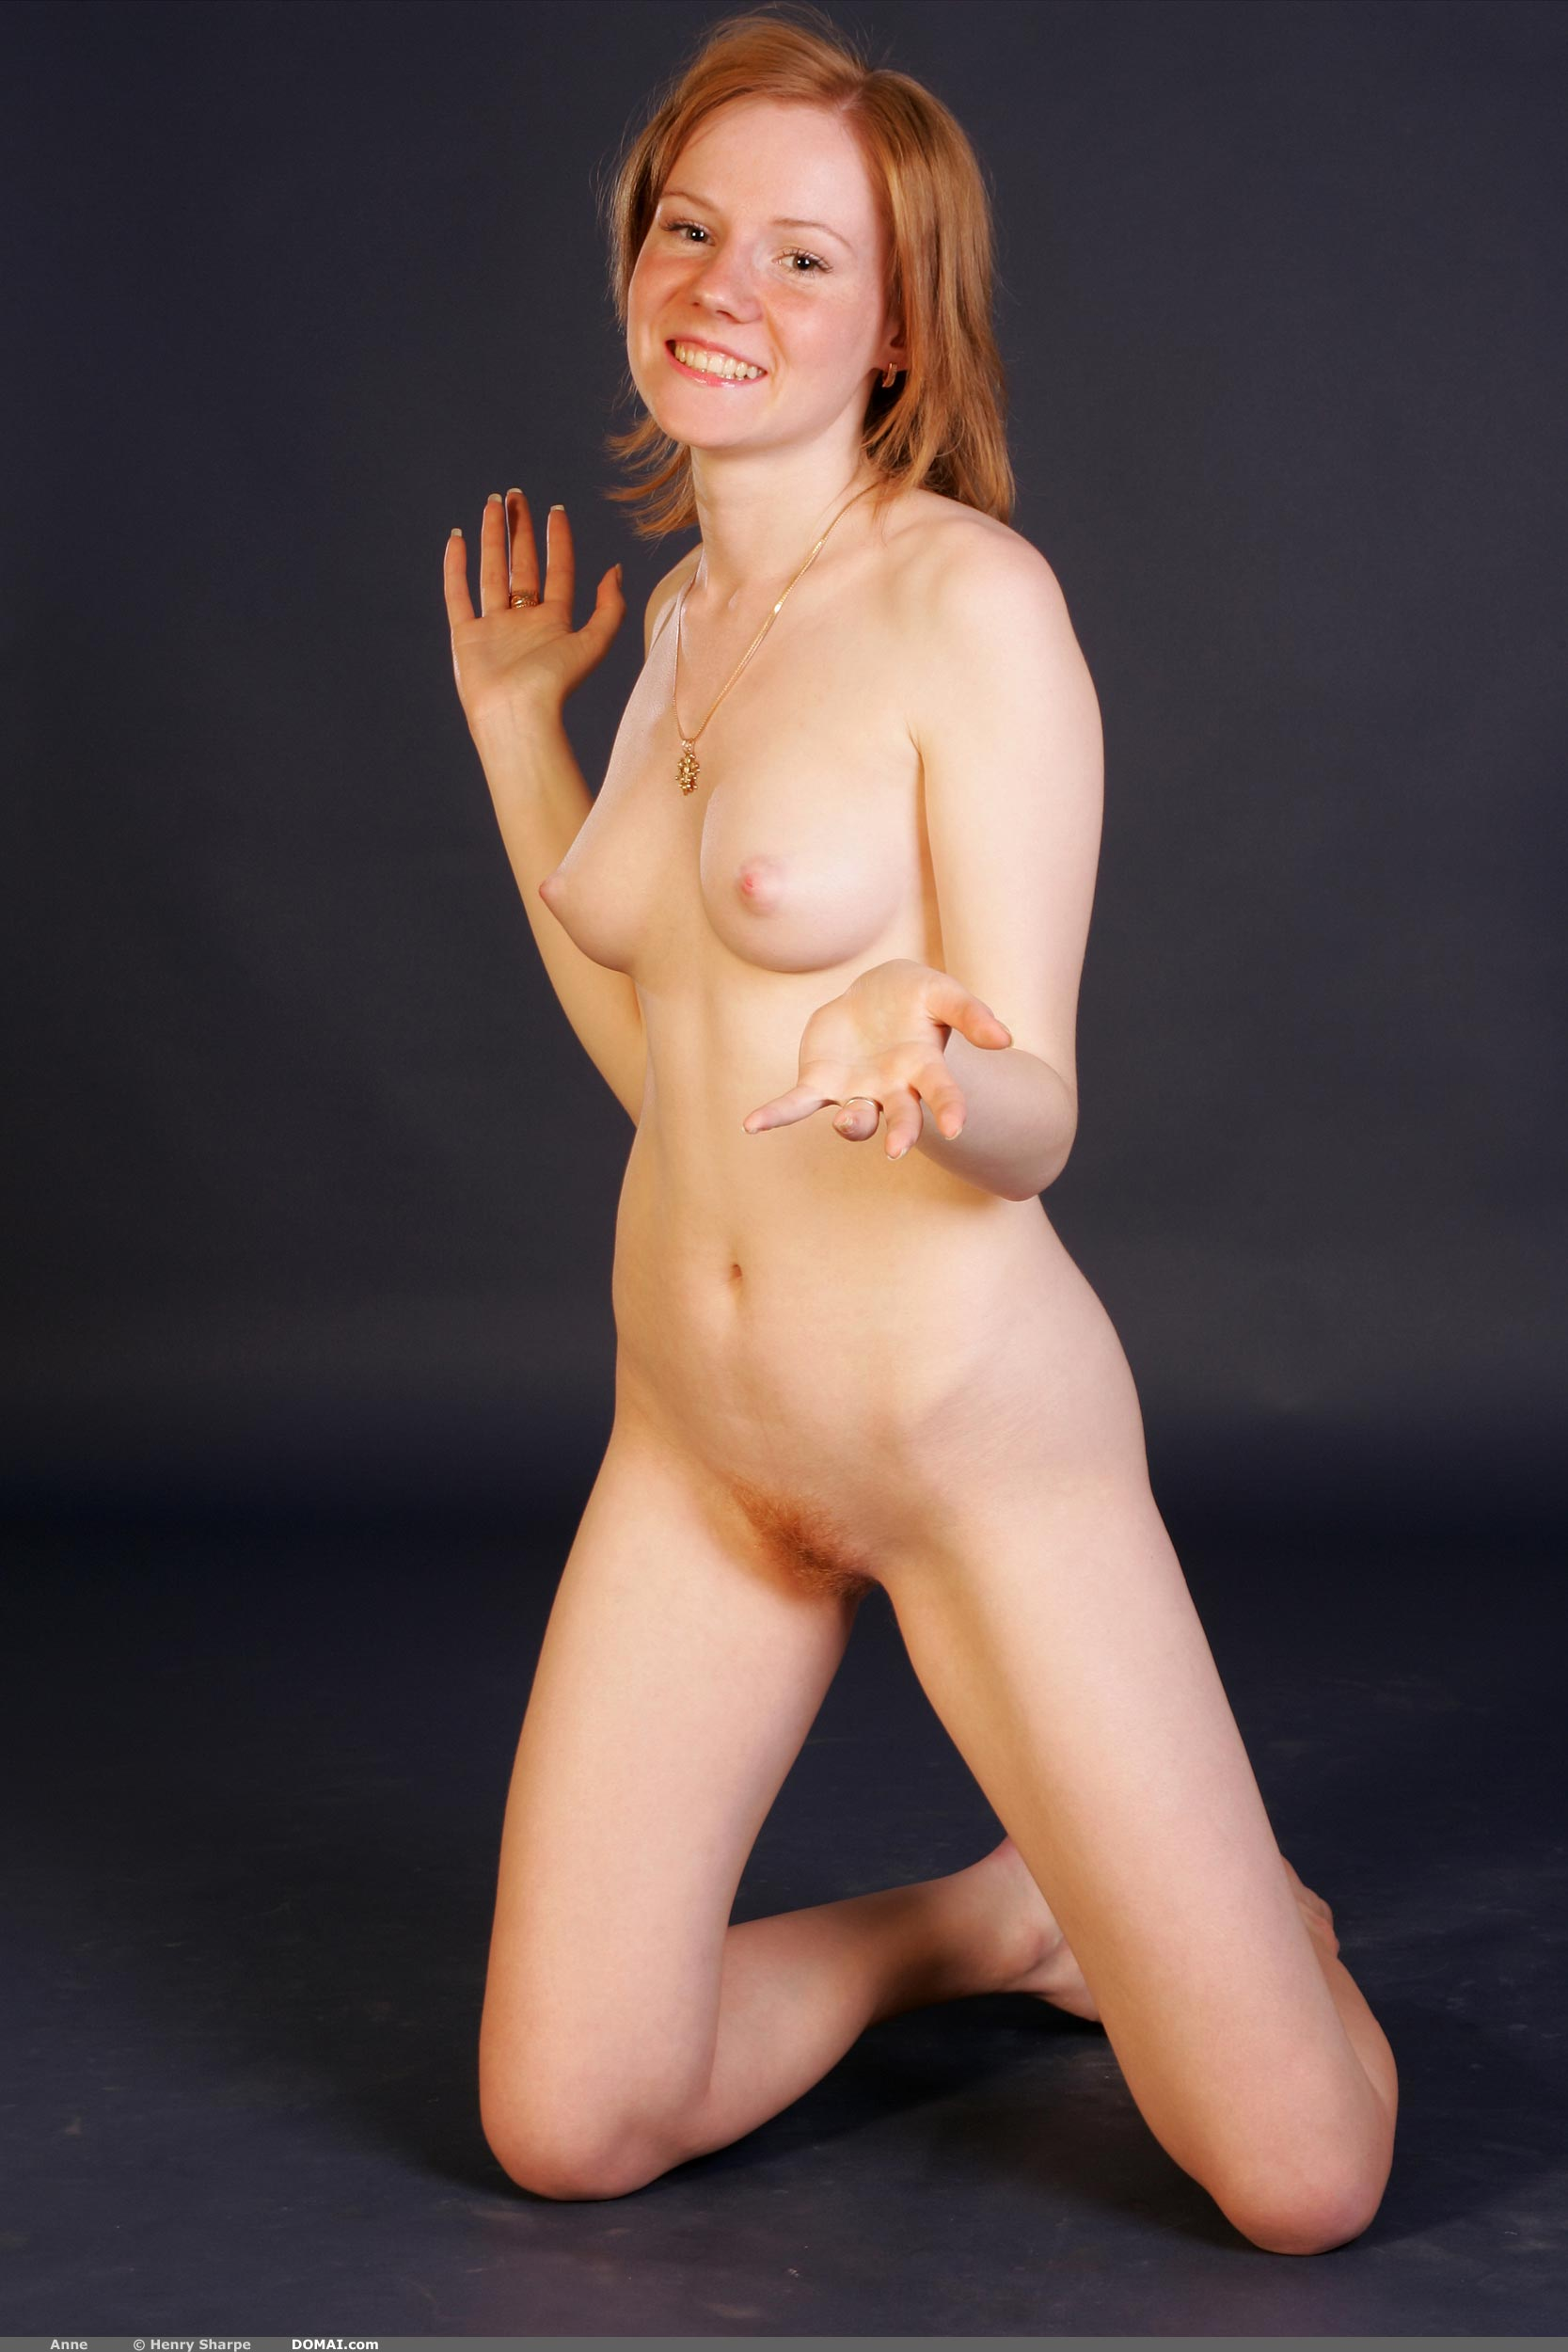 Cock! porno models nudist